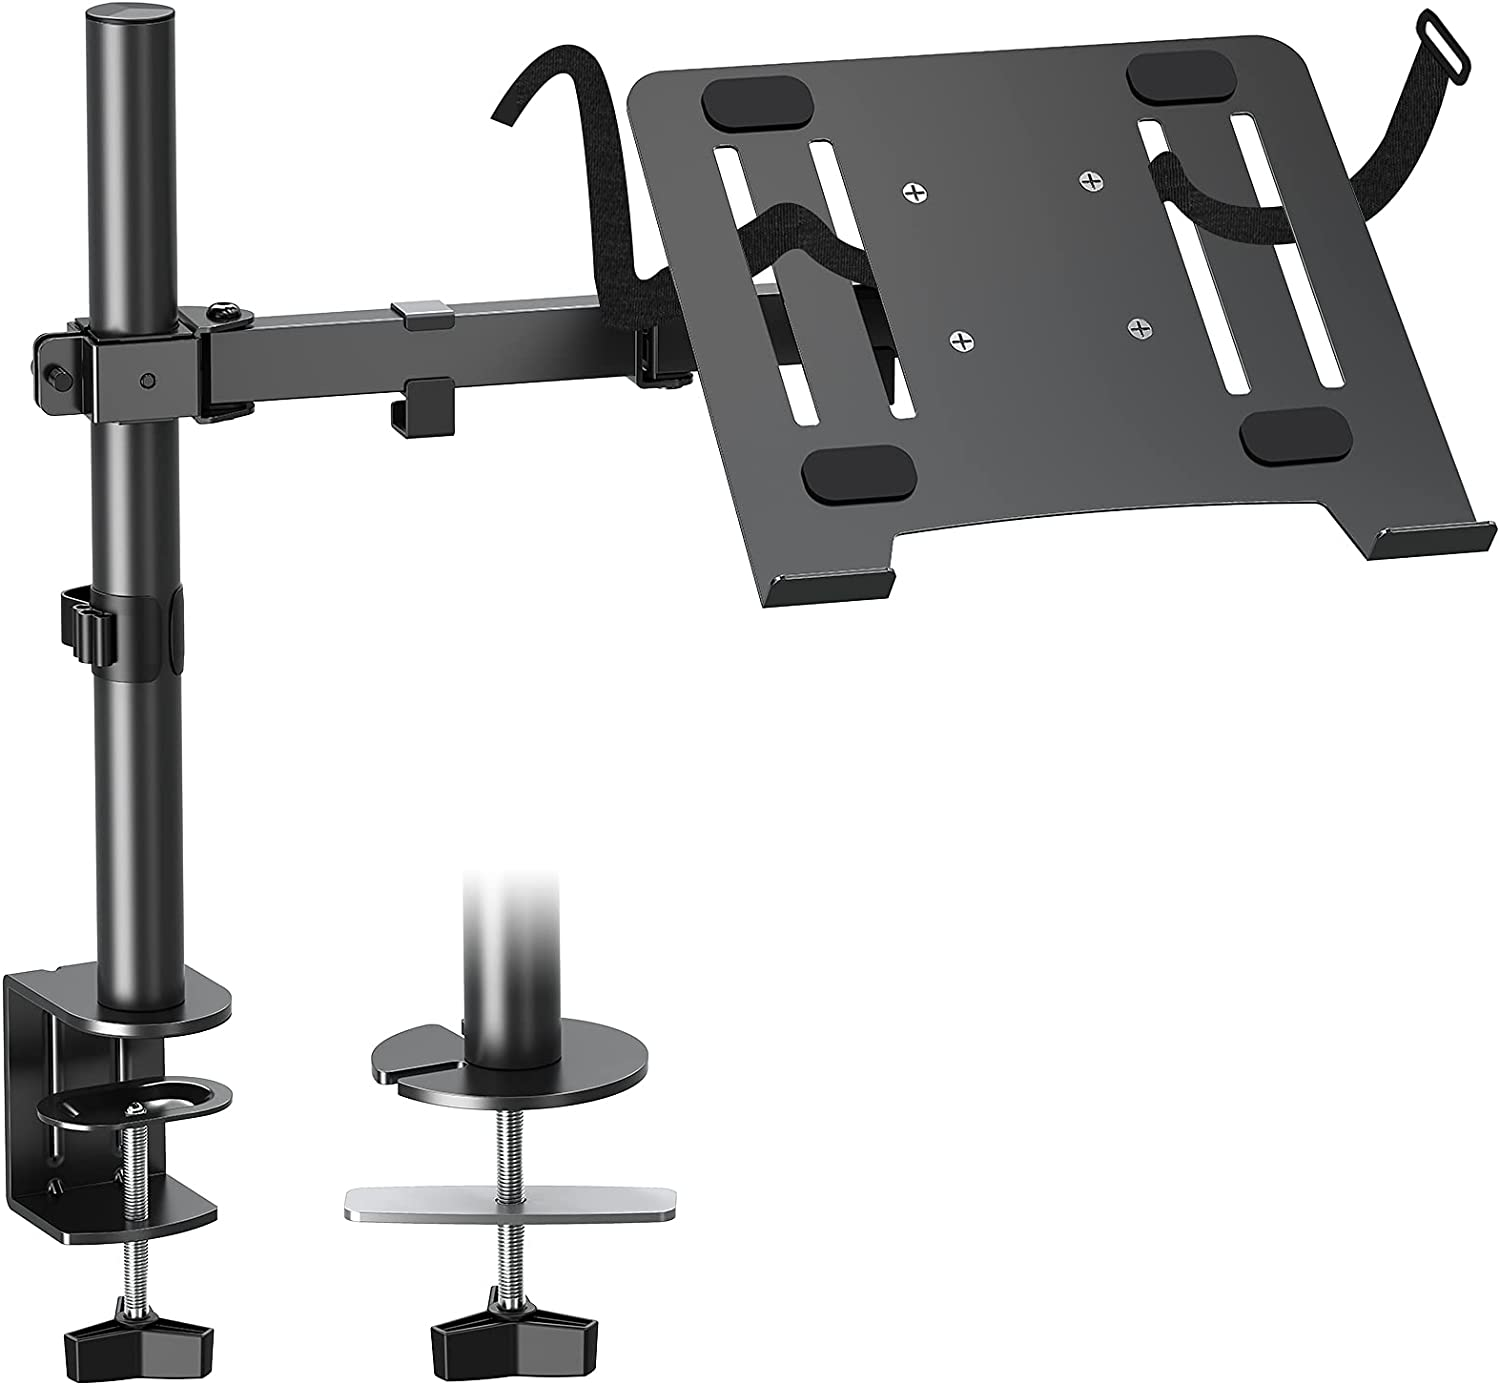 MOUNTUP Single Laptop Mount with Tray, Notebook Arm Stand Desk Mount, C Clamp and Mounting Grommet Base, VESA 75x75/100x100, Height Adjustable for Laptop up to 17 inch